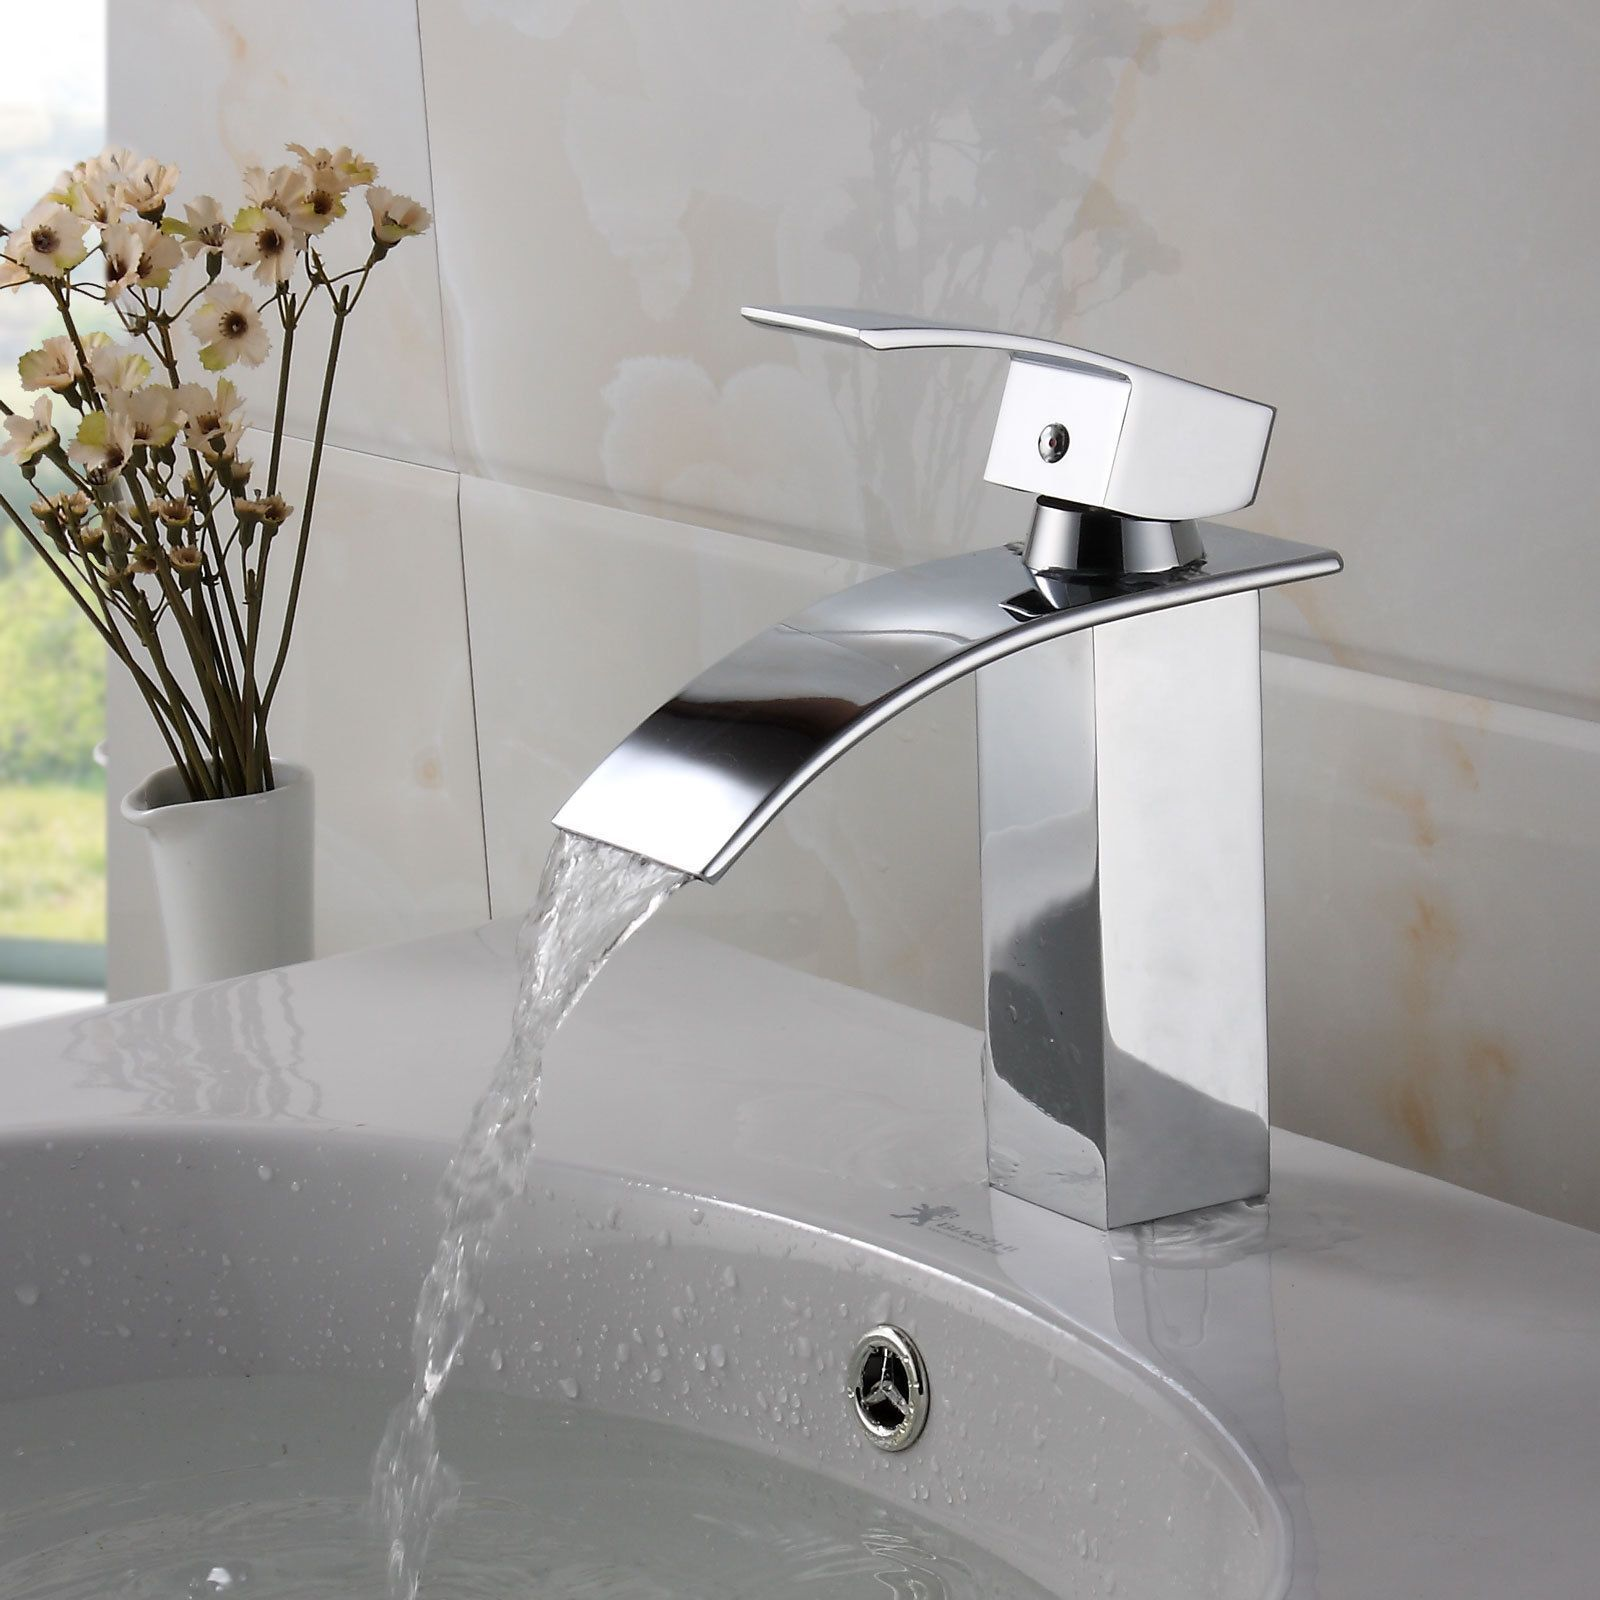 Elite Modern Bathroom Sink Waterfall Faucet Chrome Finish by Elite ...